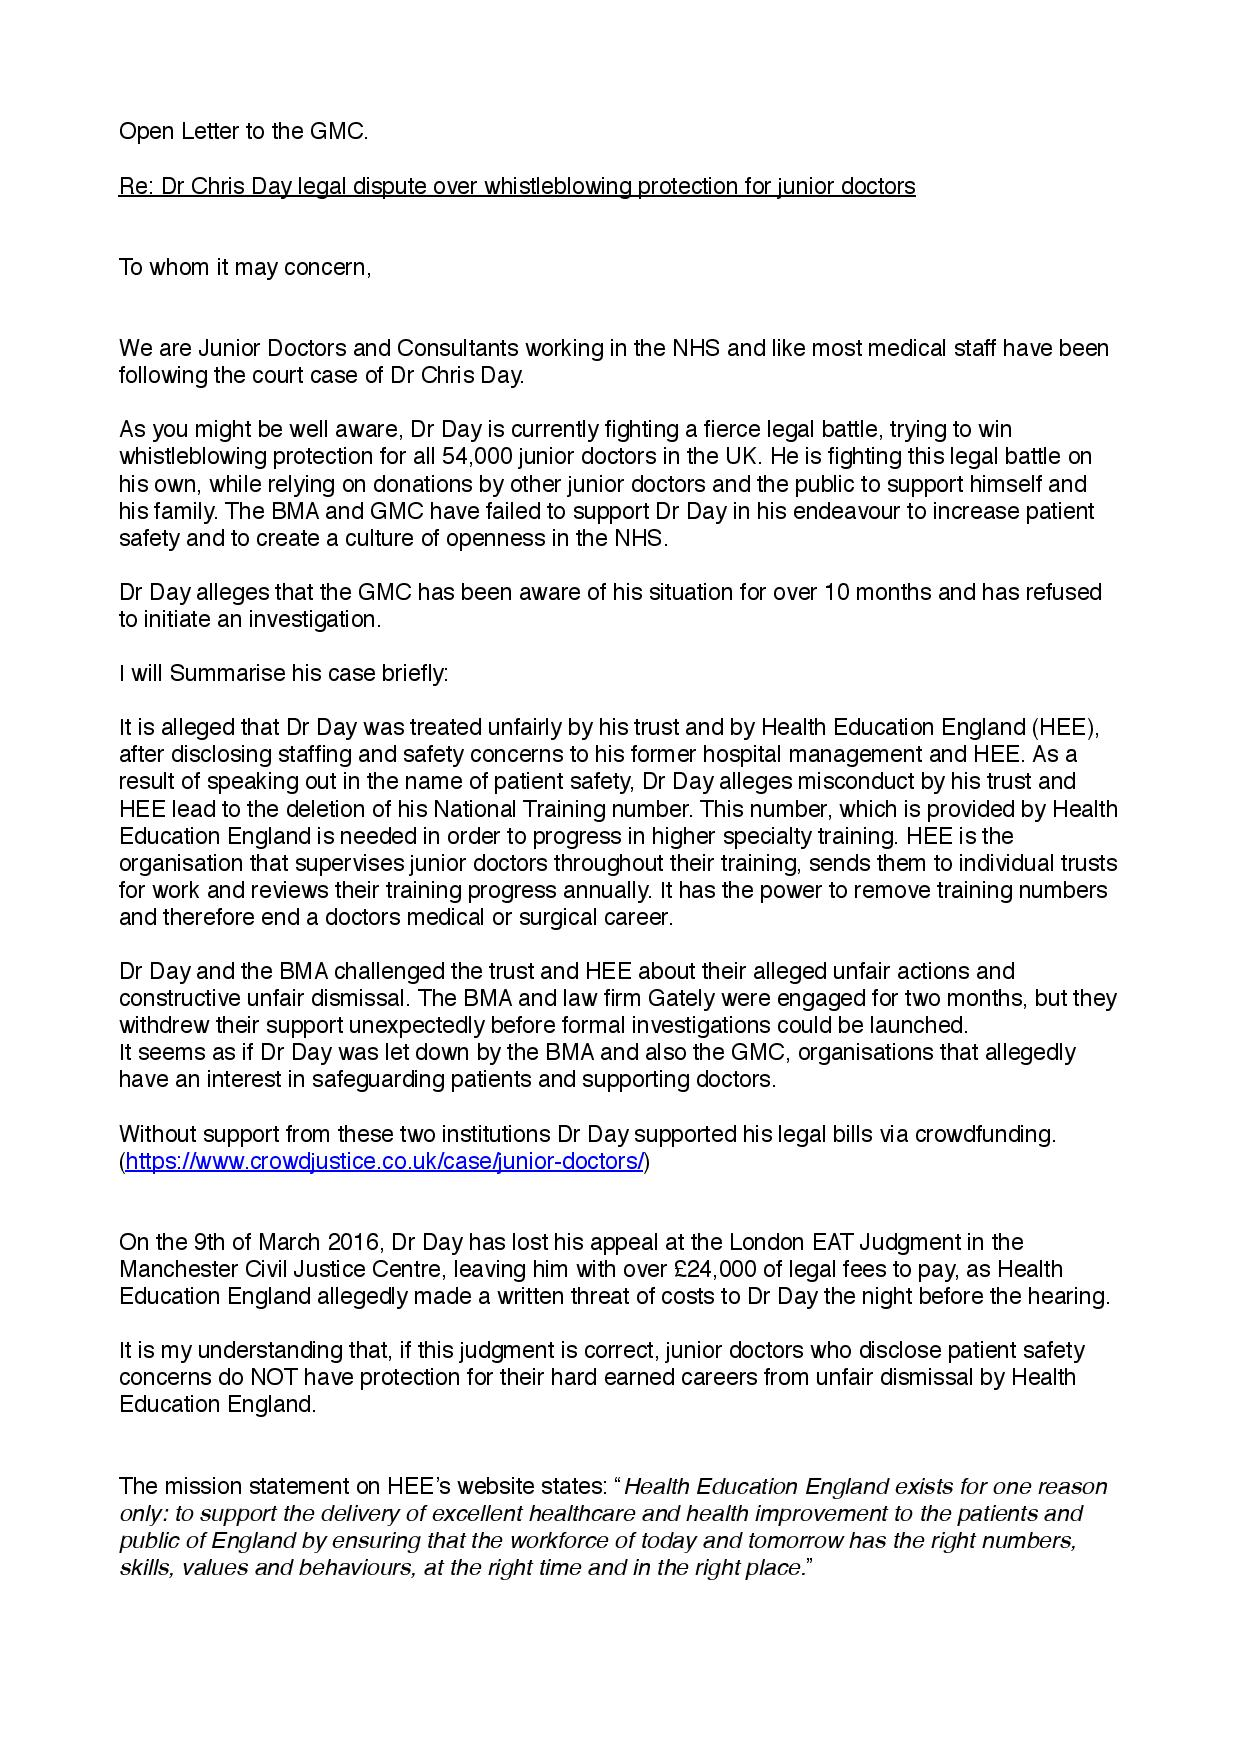 Letter to the GMC Signed by 1,000 Doctors